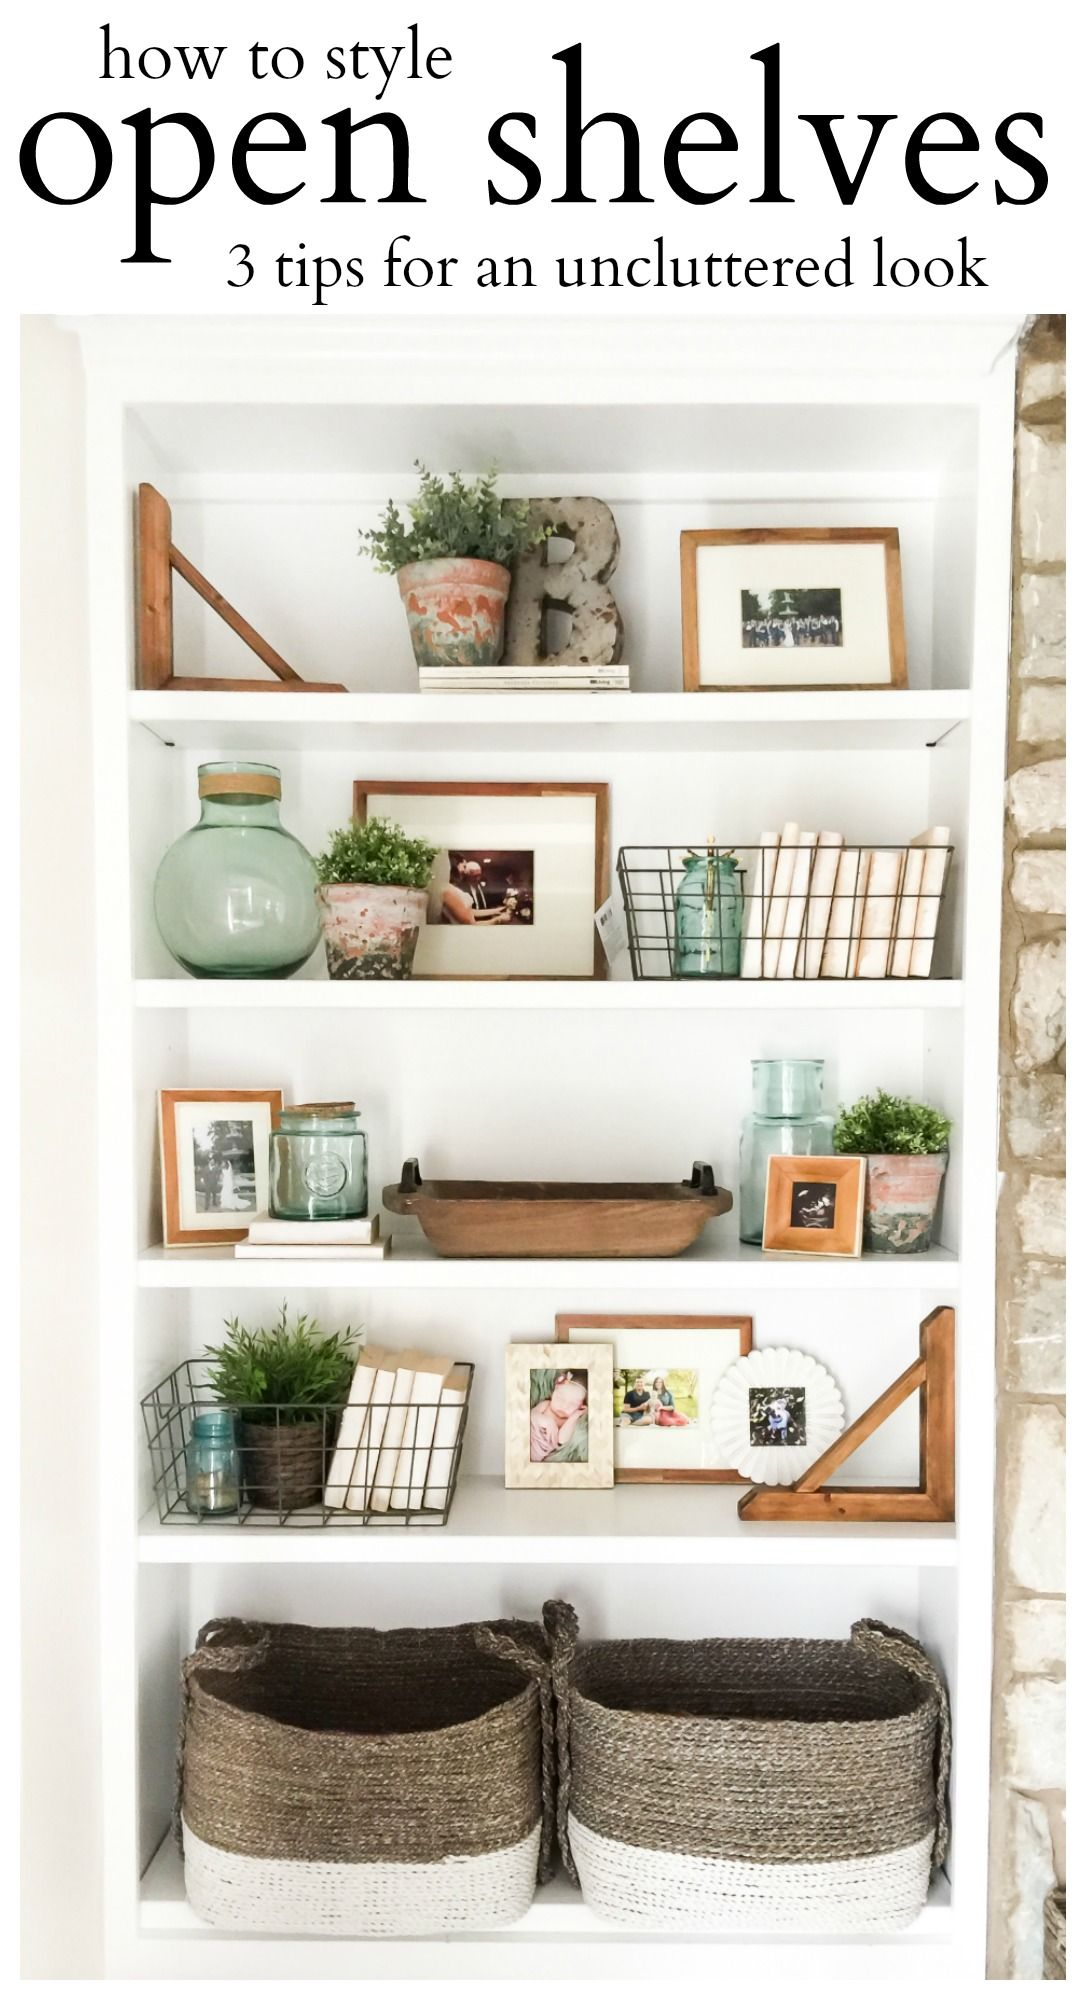 How to Style Open Shelves: 8 Tips for an Uncluttered Look - House